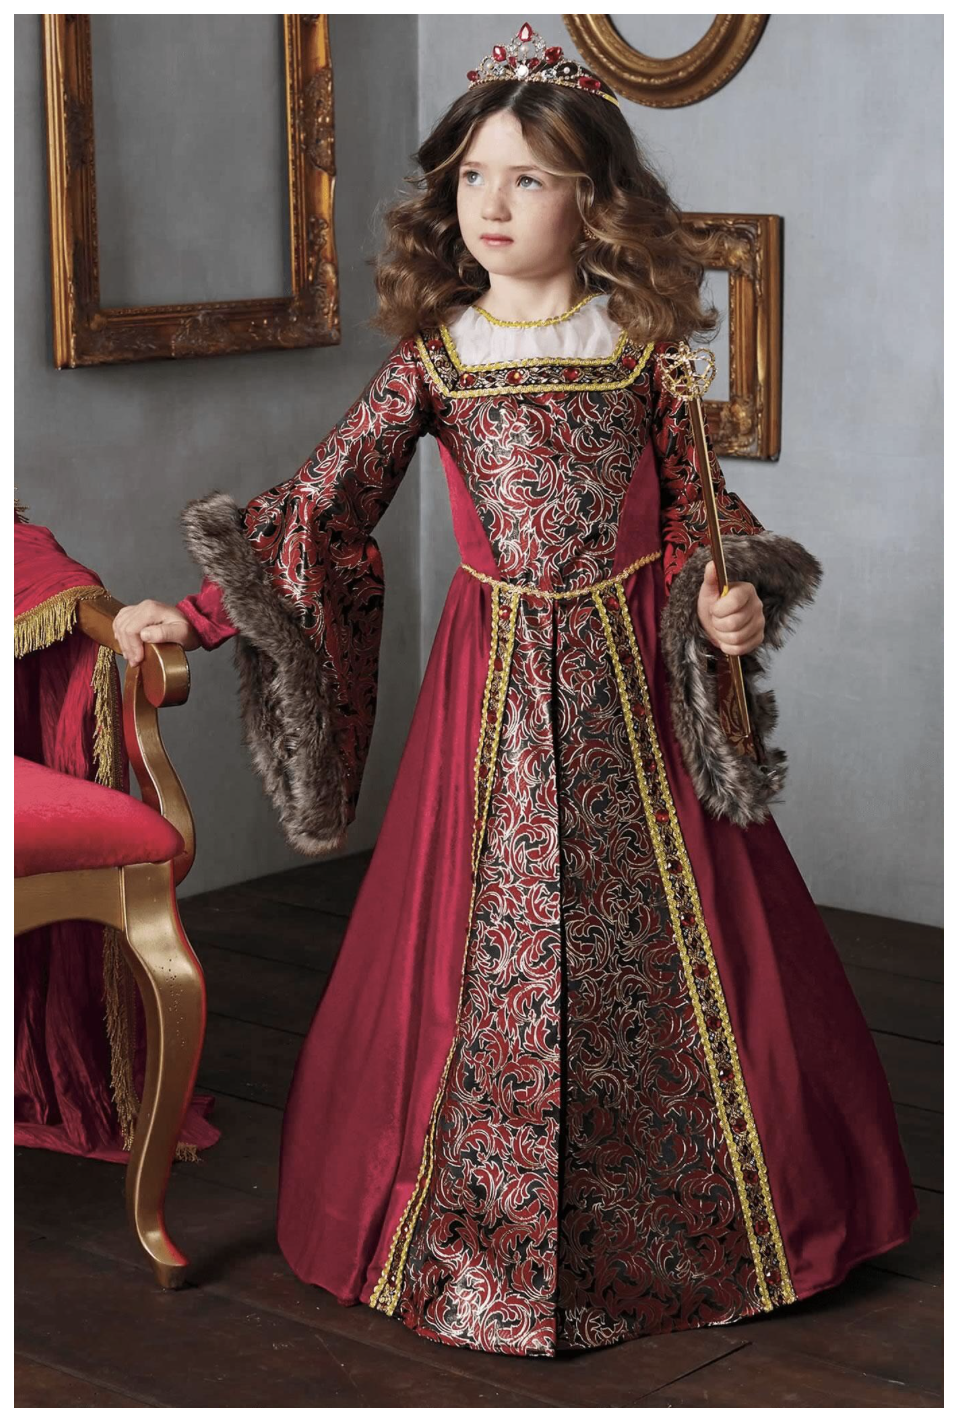 Queen Isabella Costume For Girls Item 850648  Available in sizes 6-16